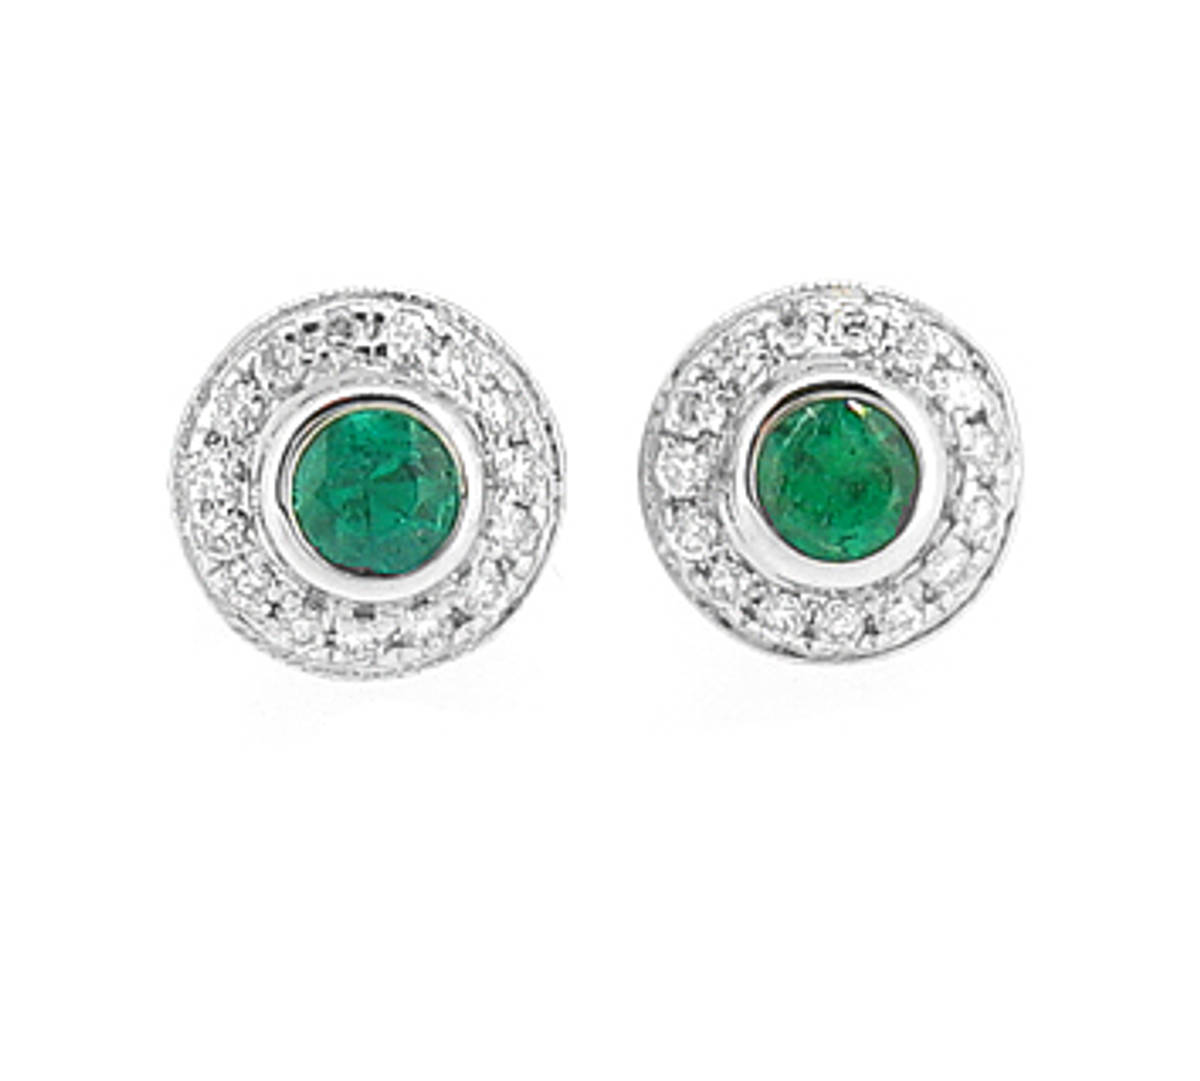 Emerald and diamond cluster stud earrings in 18 ct white gold